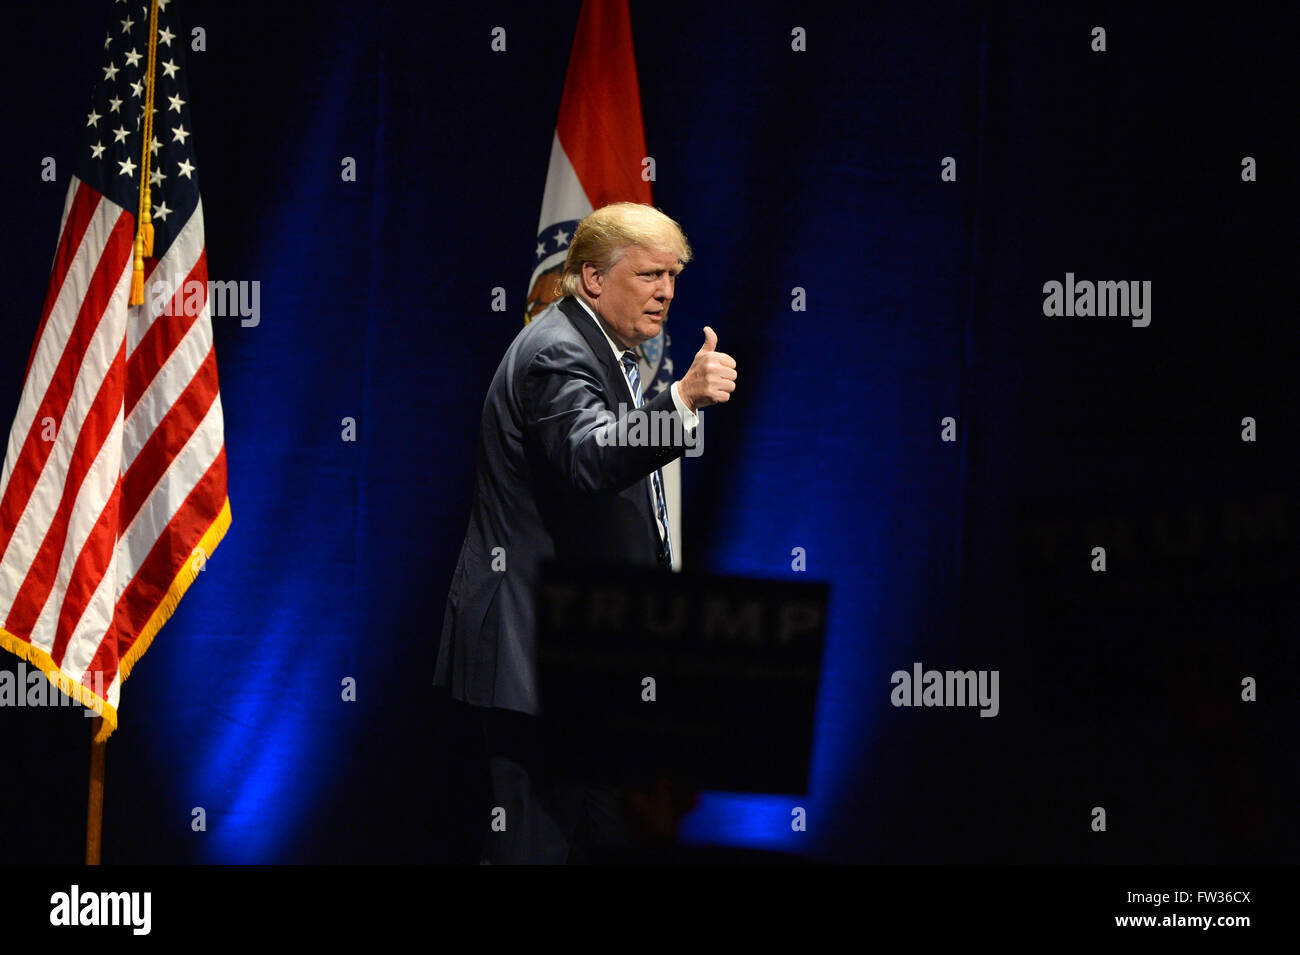 Saint Louis, MO, USA – March 11, 2016: Donald Trump talks to supporters at the Peabody Opera House in Saint Louis, - Stock Image